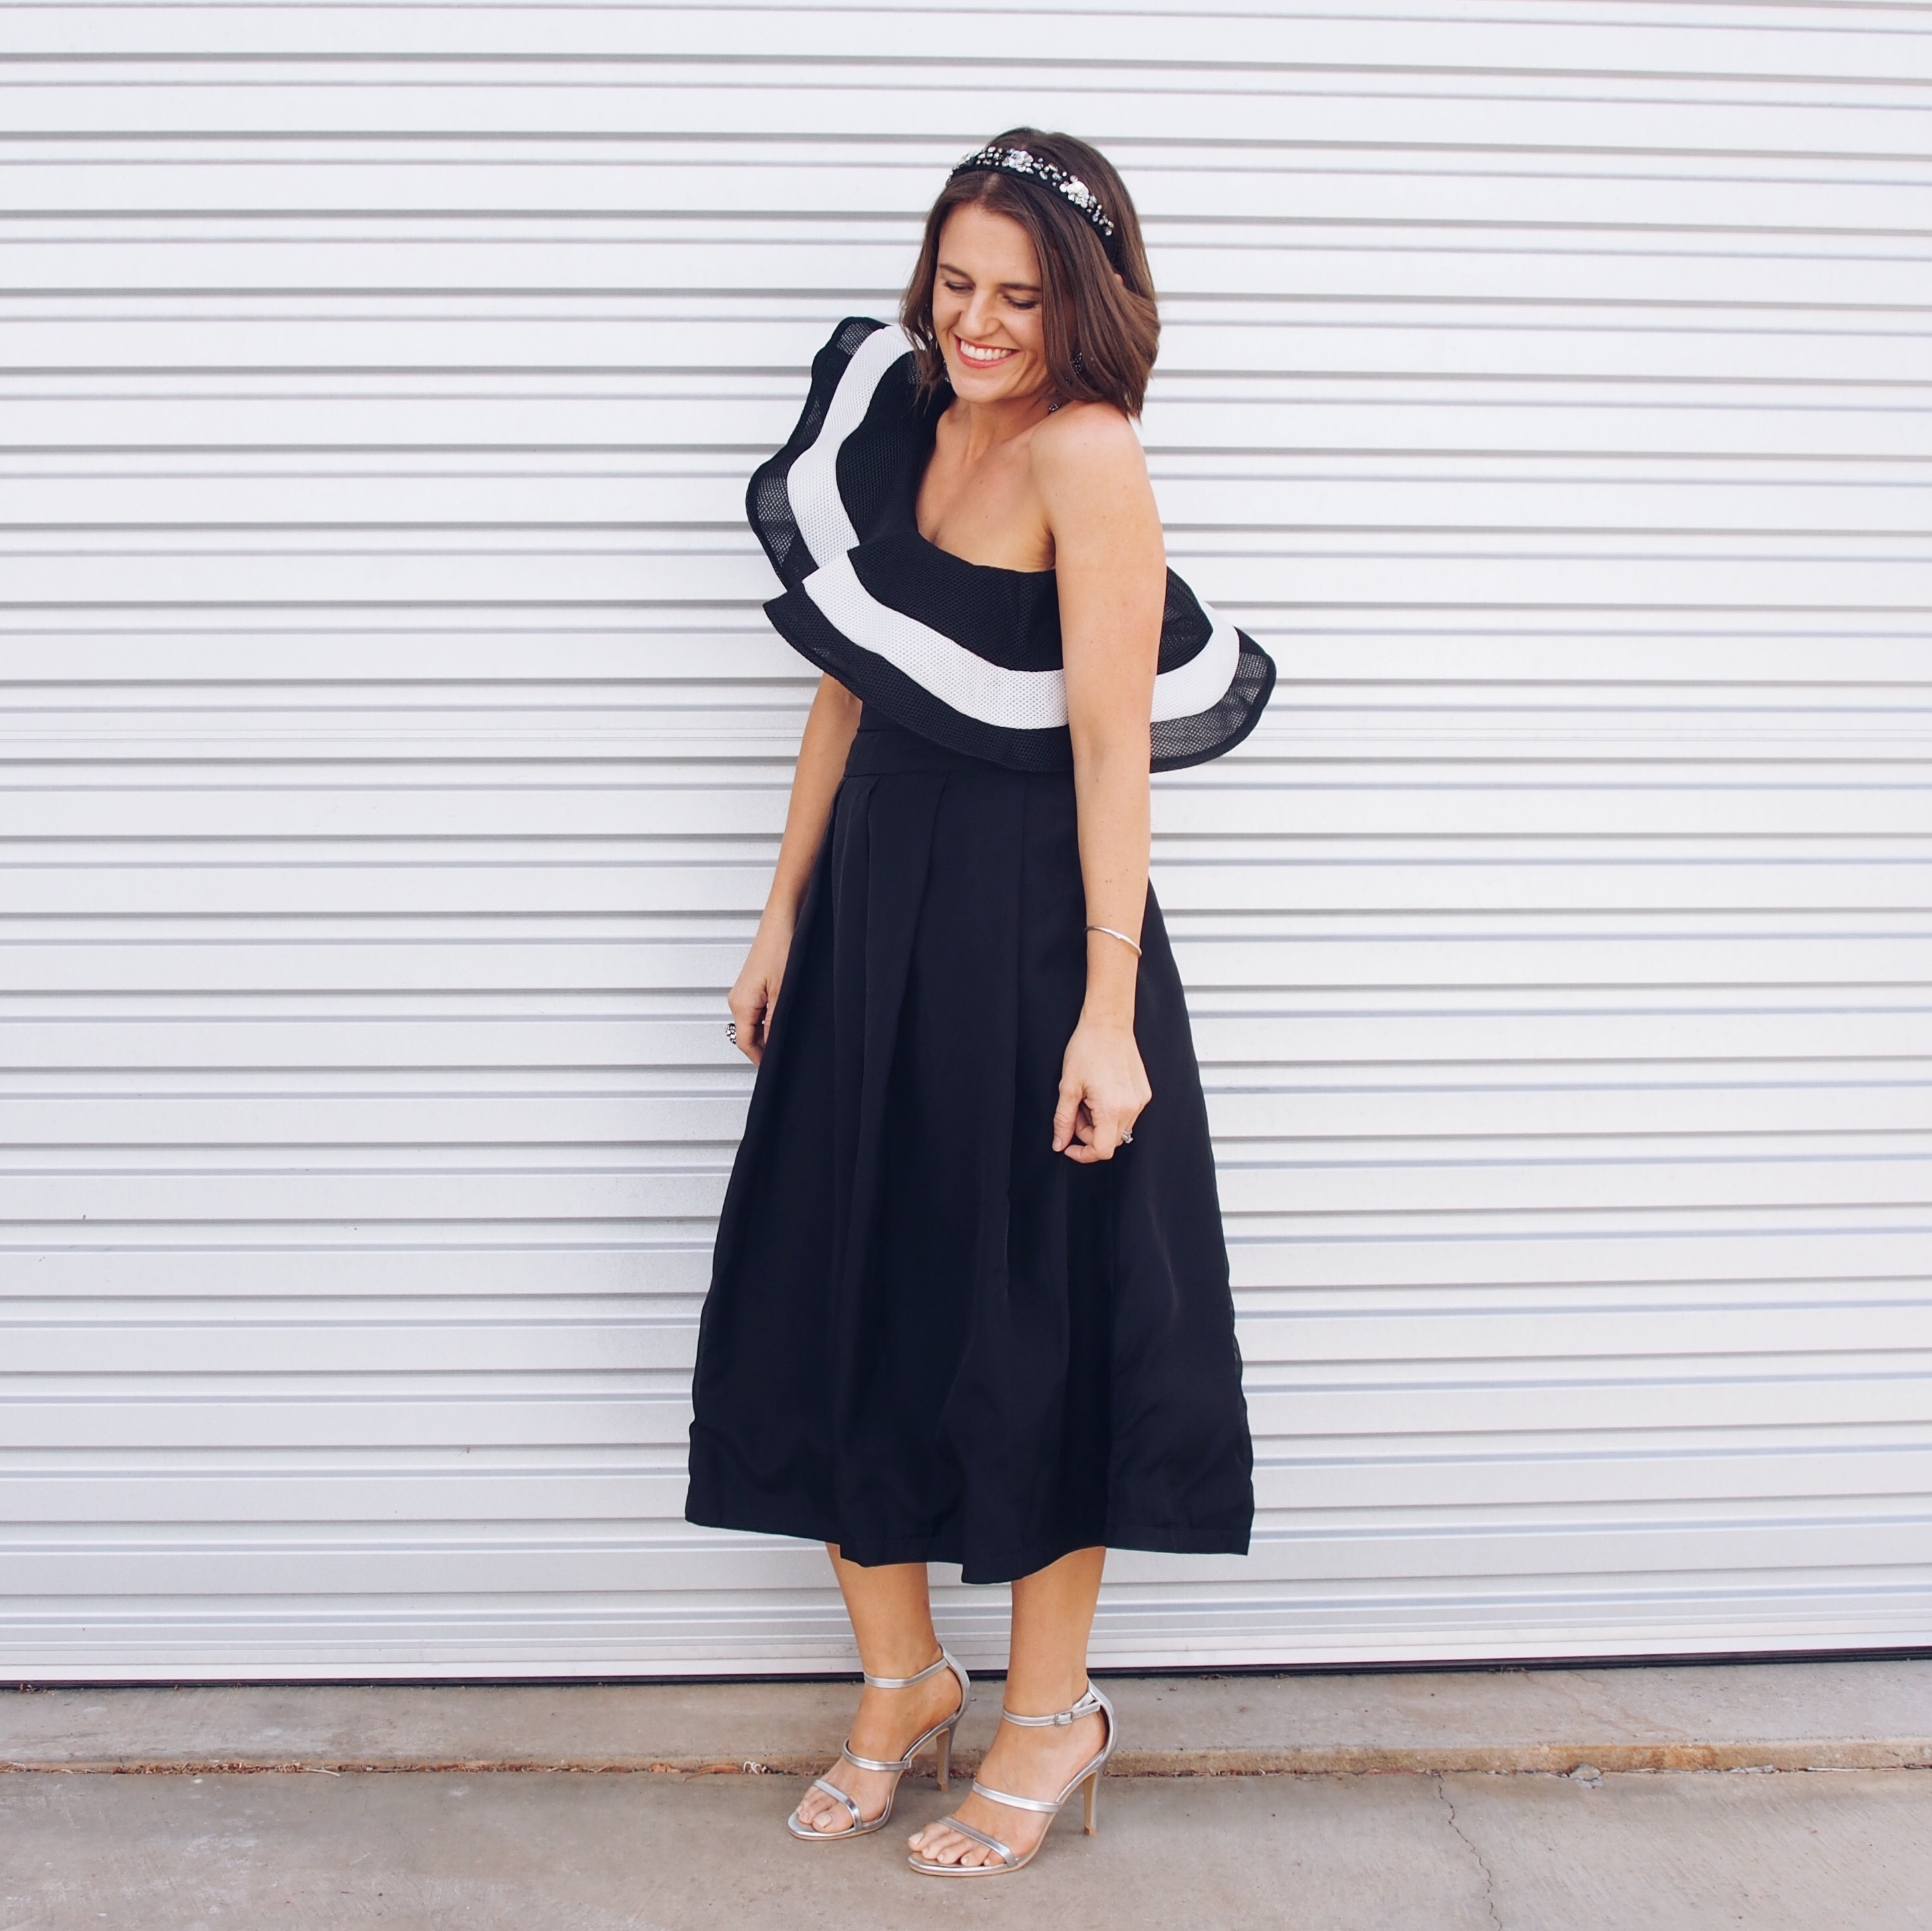 Shein bodysuit and black skirt melbourne cup outfit idea with simple headband